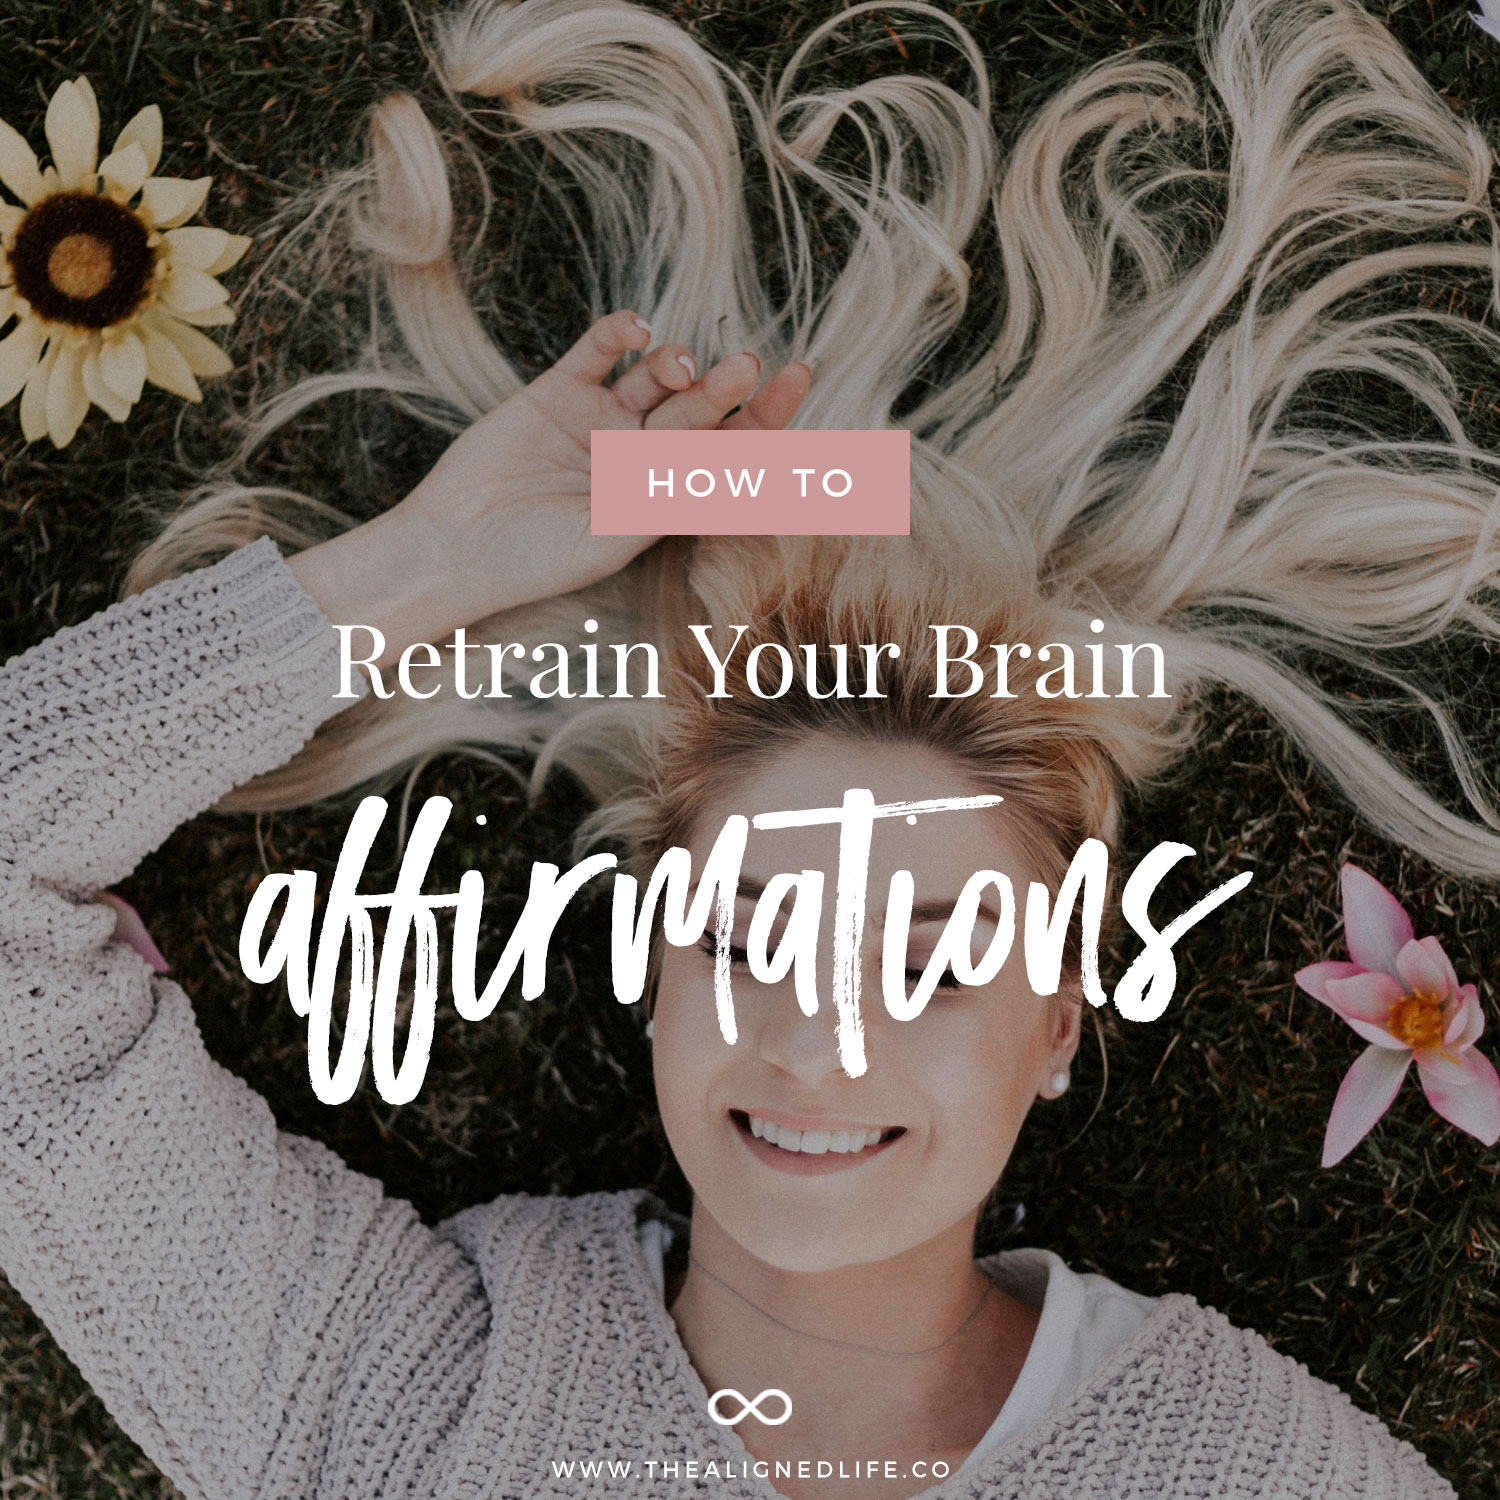 How To Retrain Your Brain With Affirmations